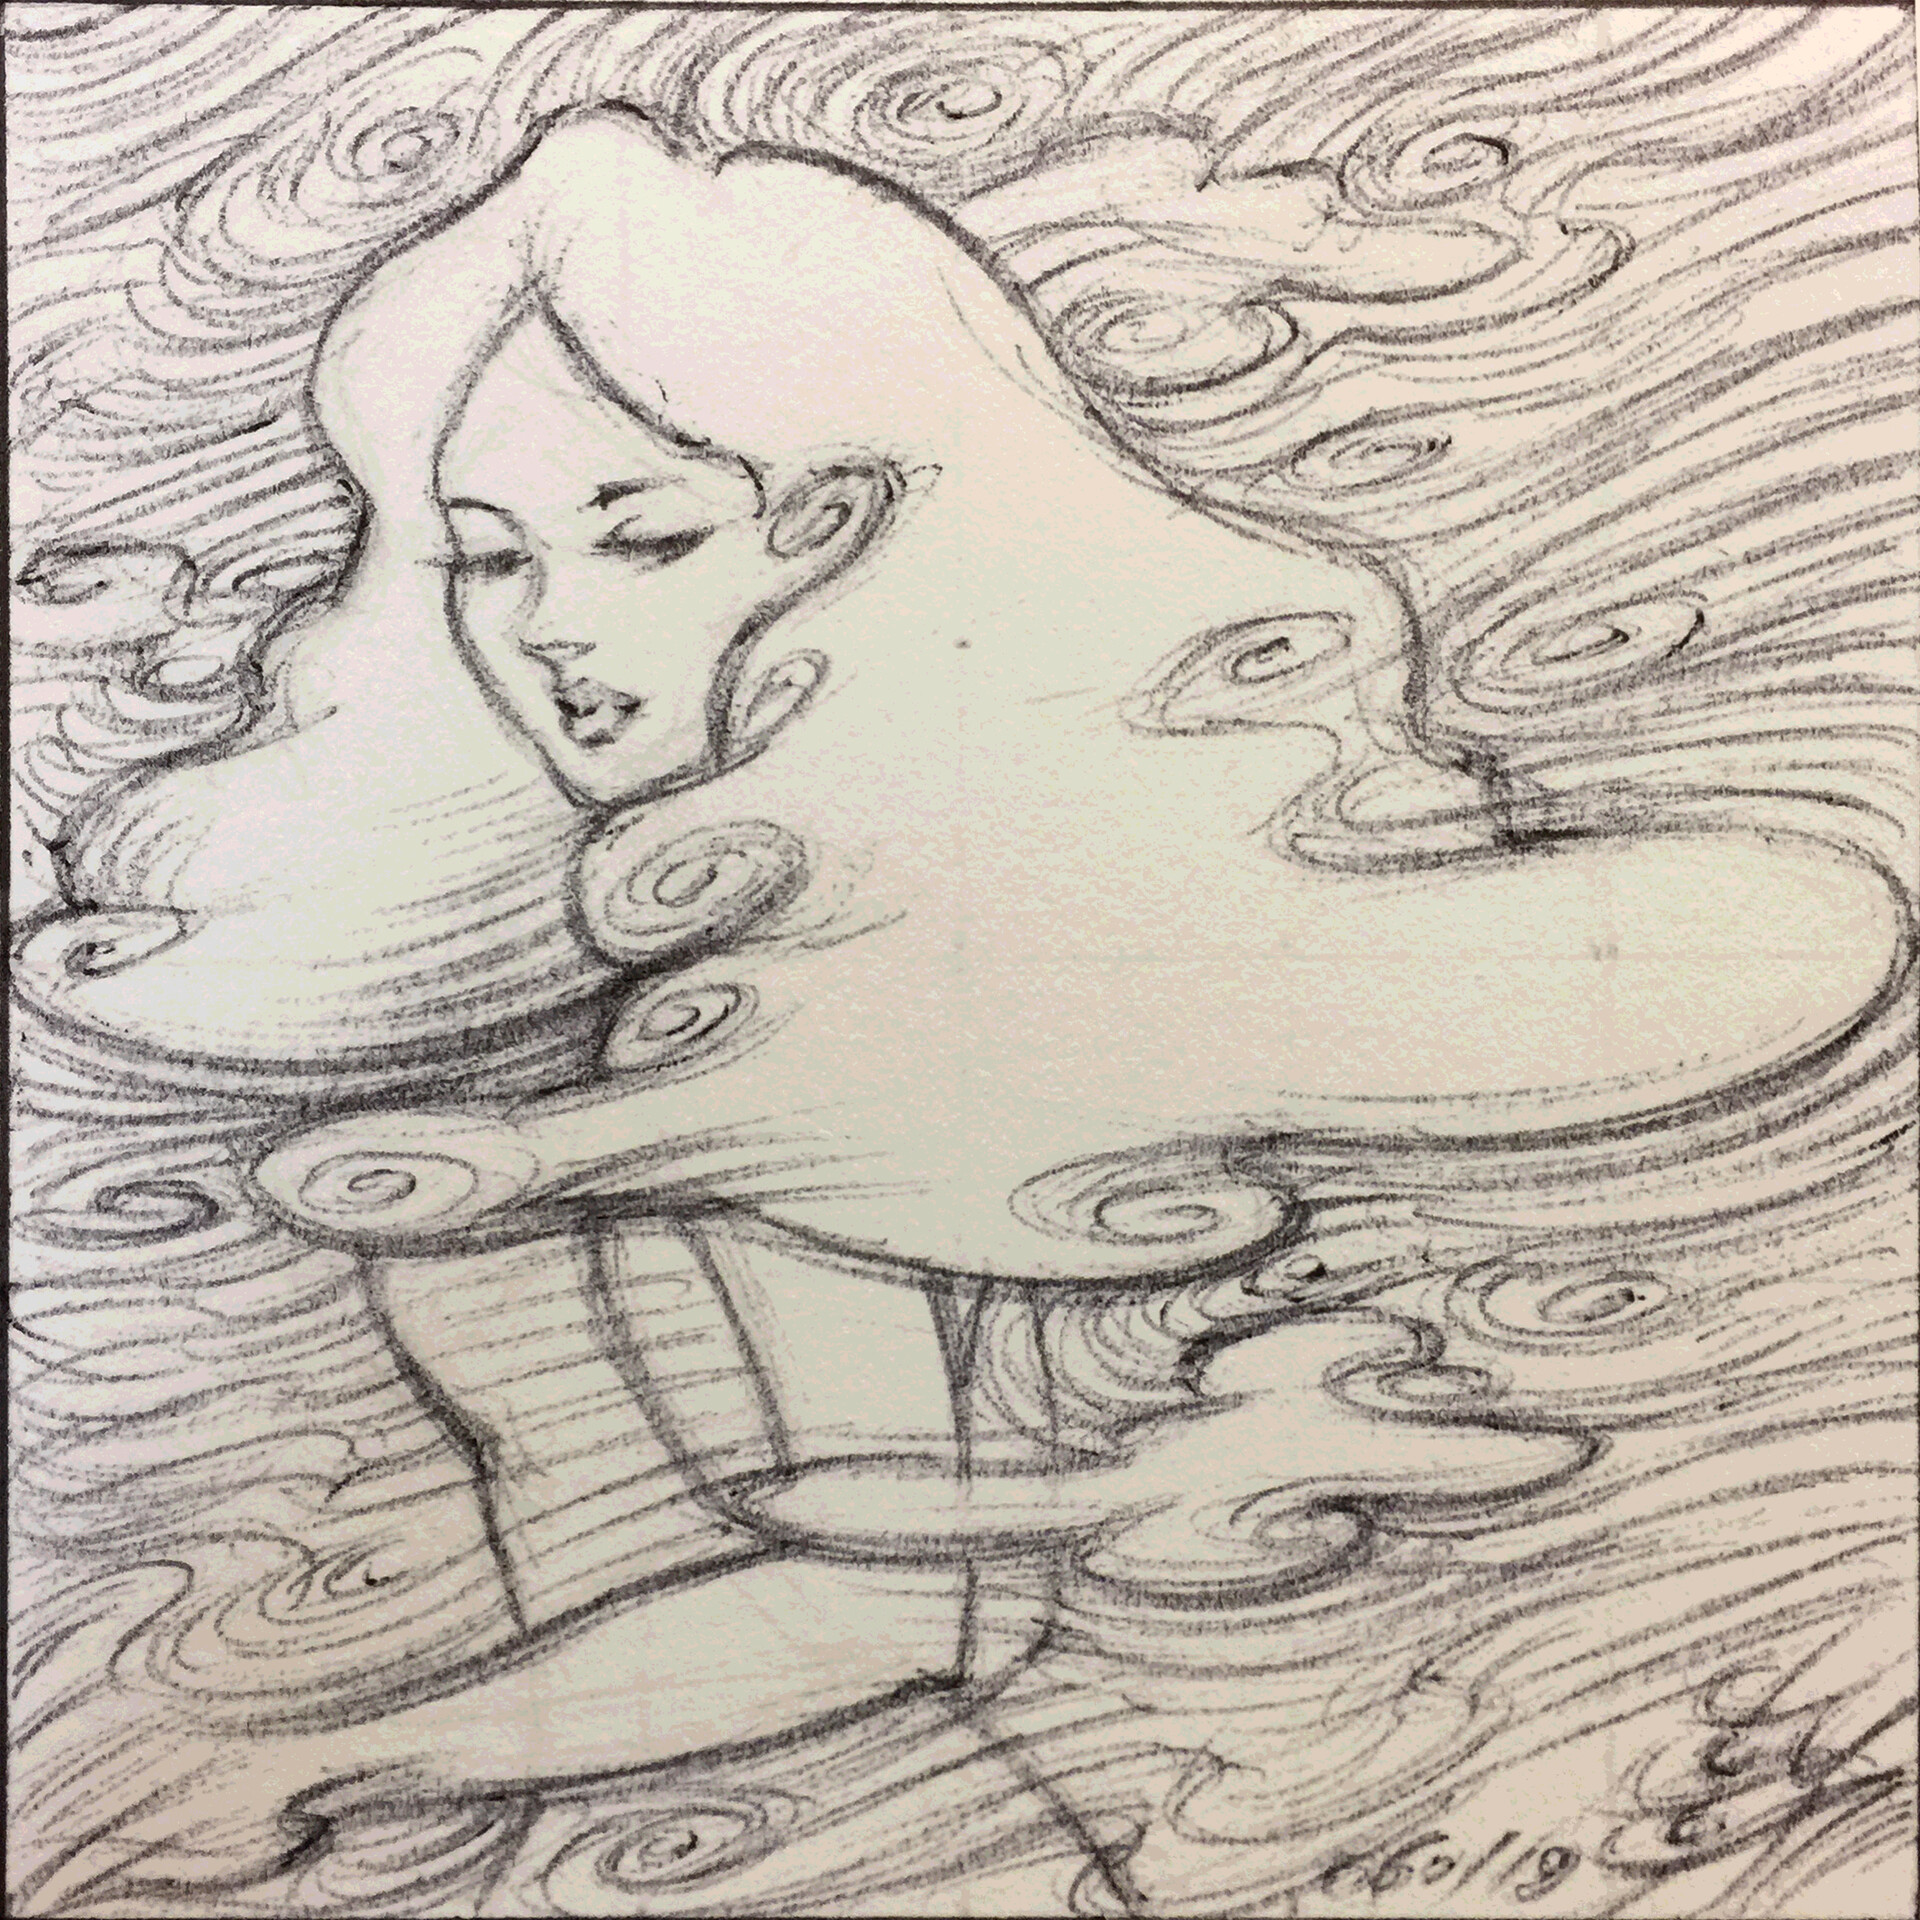 Cloudy Thoughts - Sketch